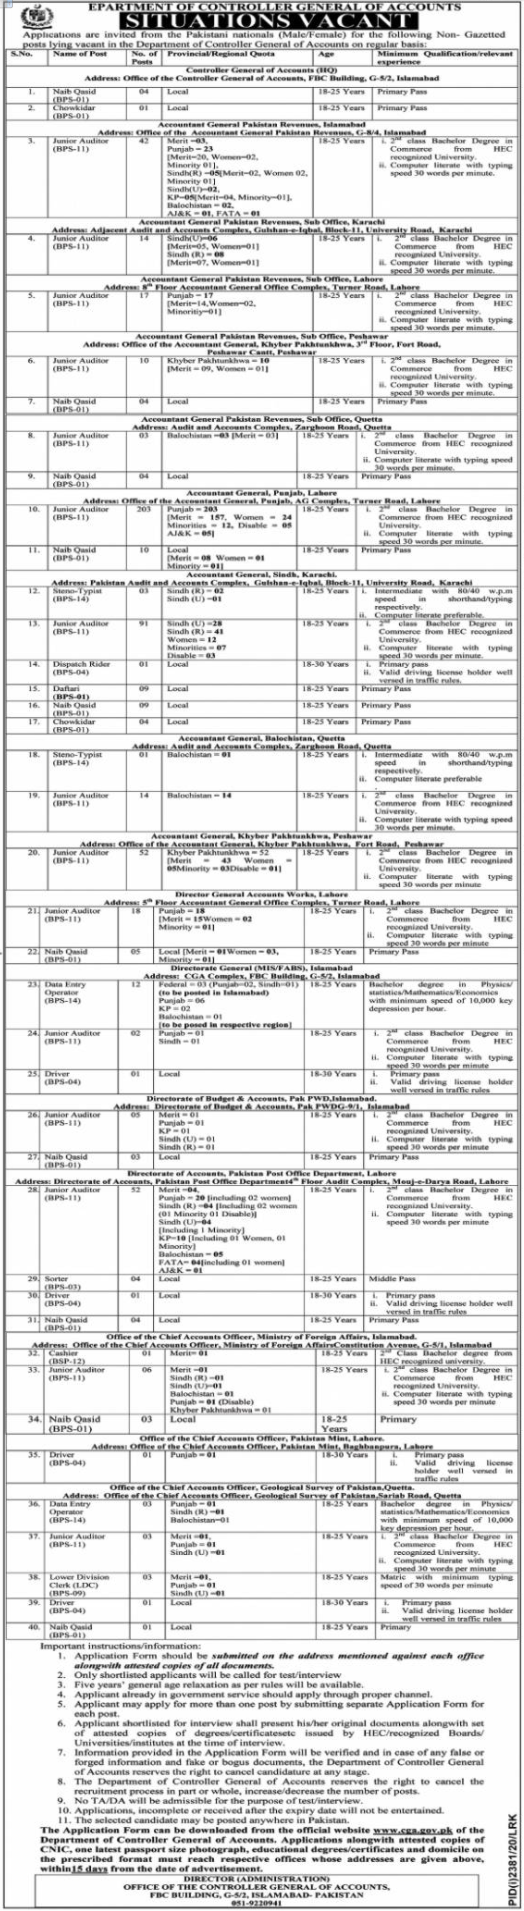 Controller General of Accounts Jobs 2020 in Islamabad